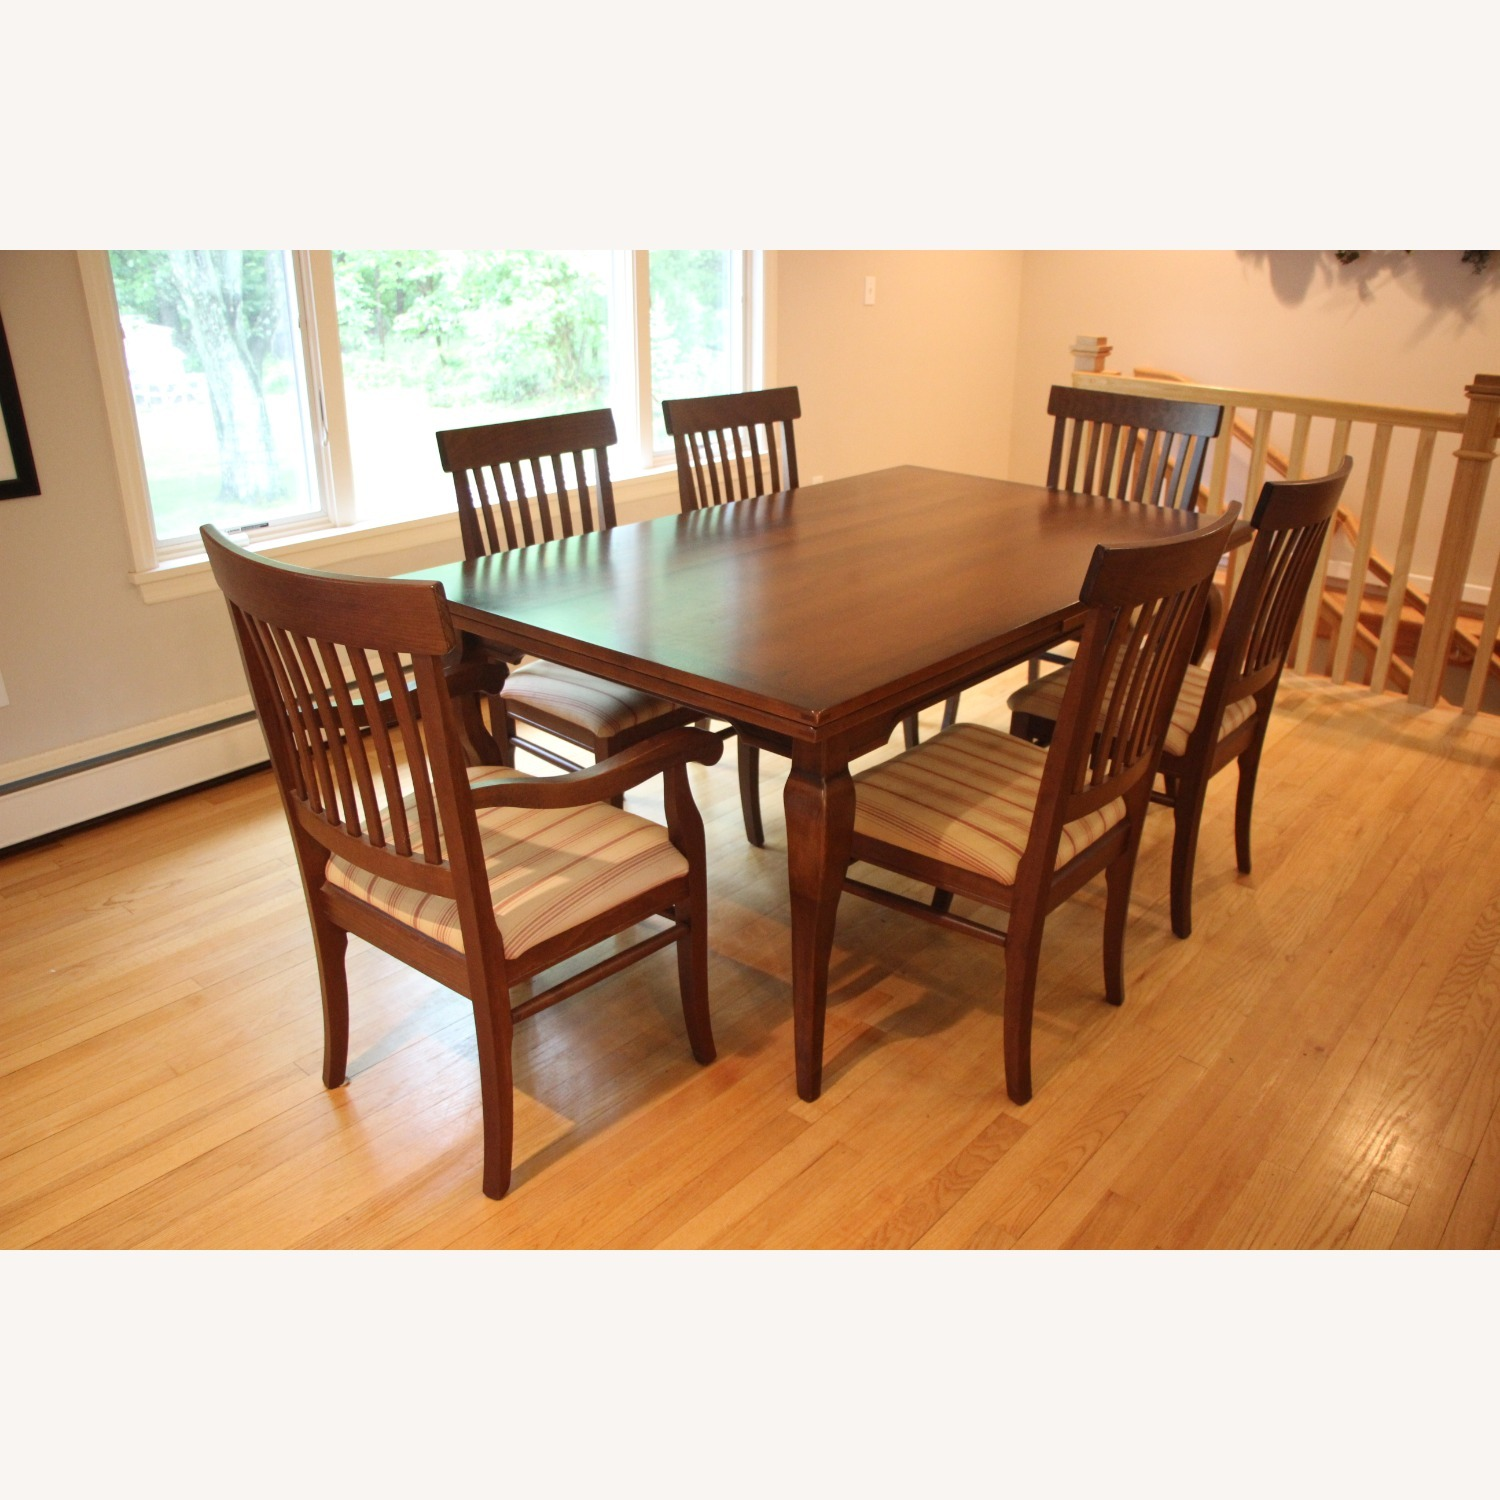 Arhaus Maple Dining Table and Chairs - image-3